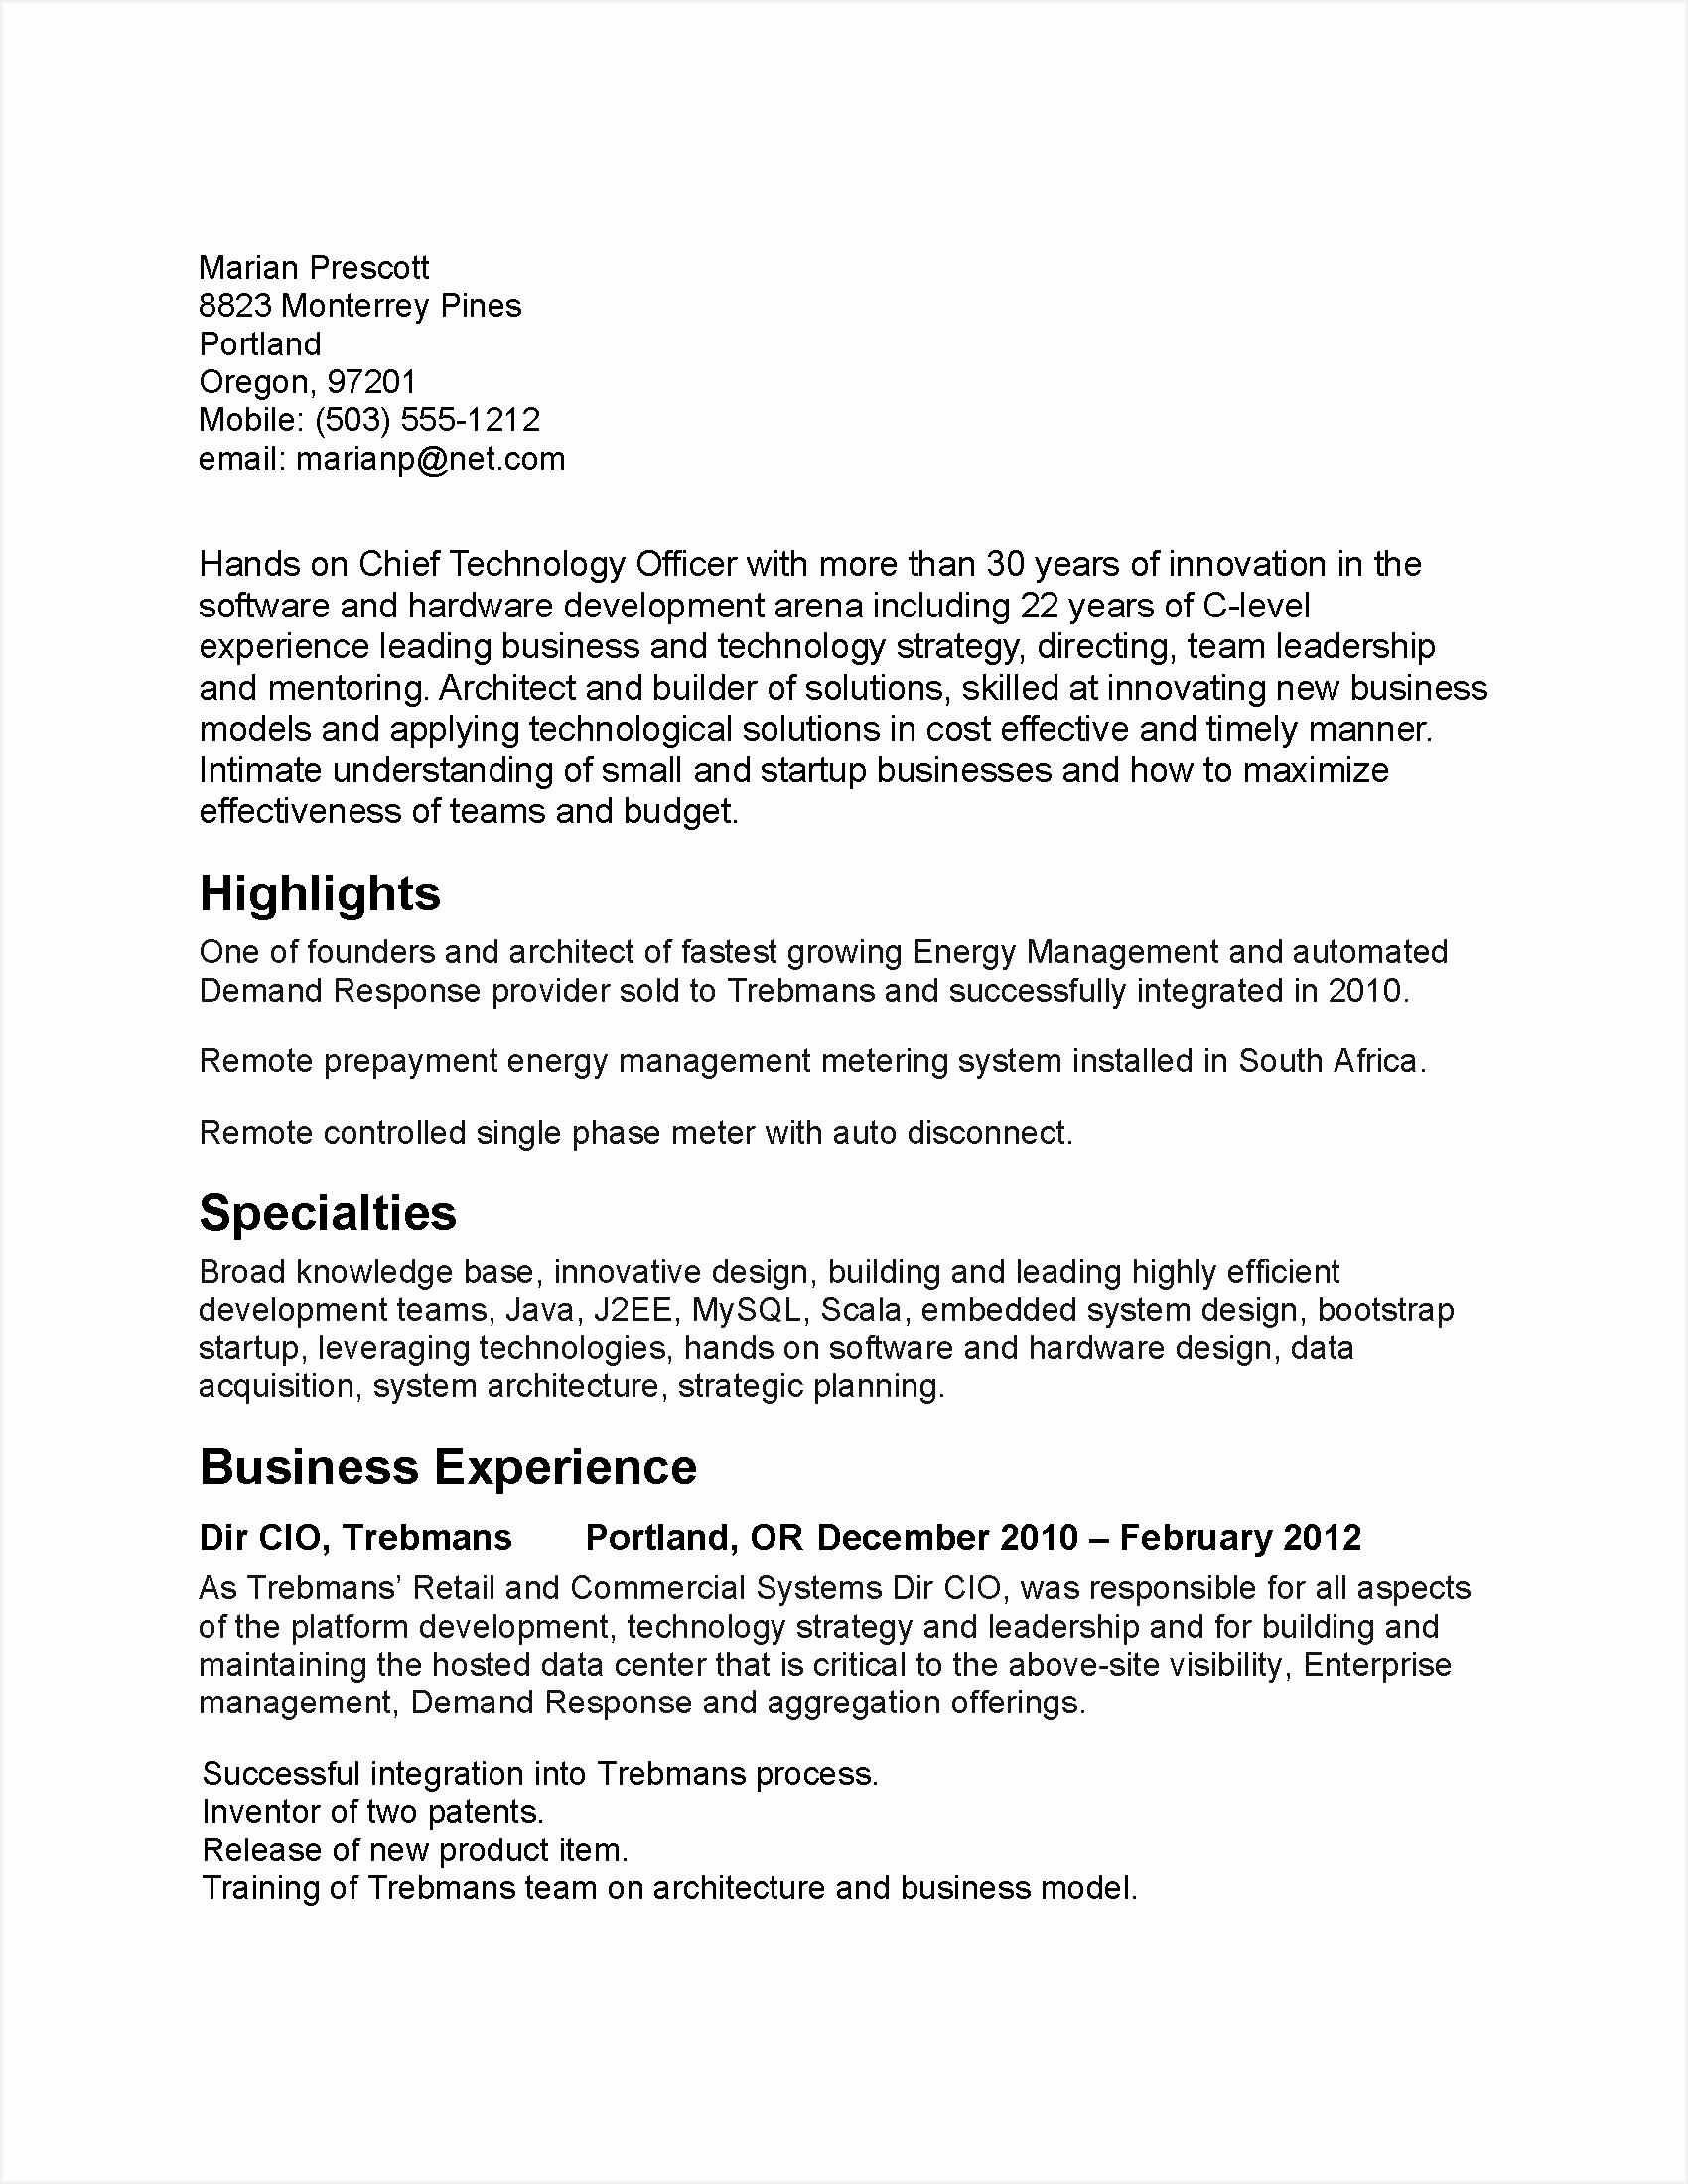 Elegant Resume Examples for Server Elegant Server Resume Template Fresh top Resume Examples Awesome Resumes22001700